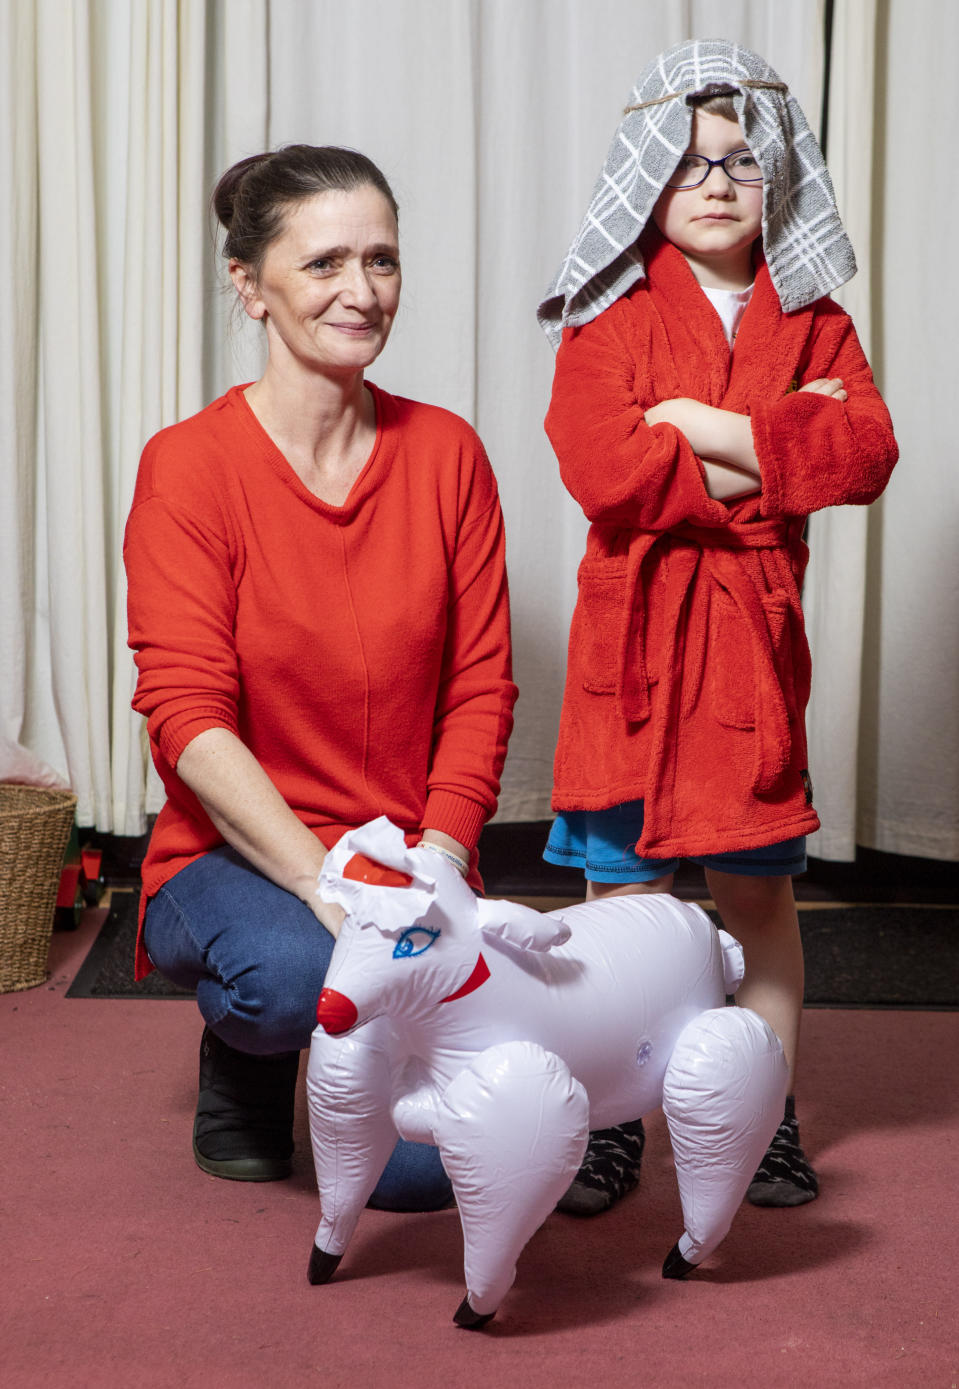 Helen initially thought that the blow up sheep that came with the shepherd costume was a bonus (SWNS)